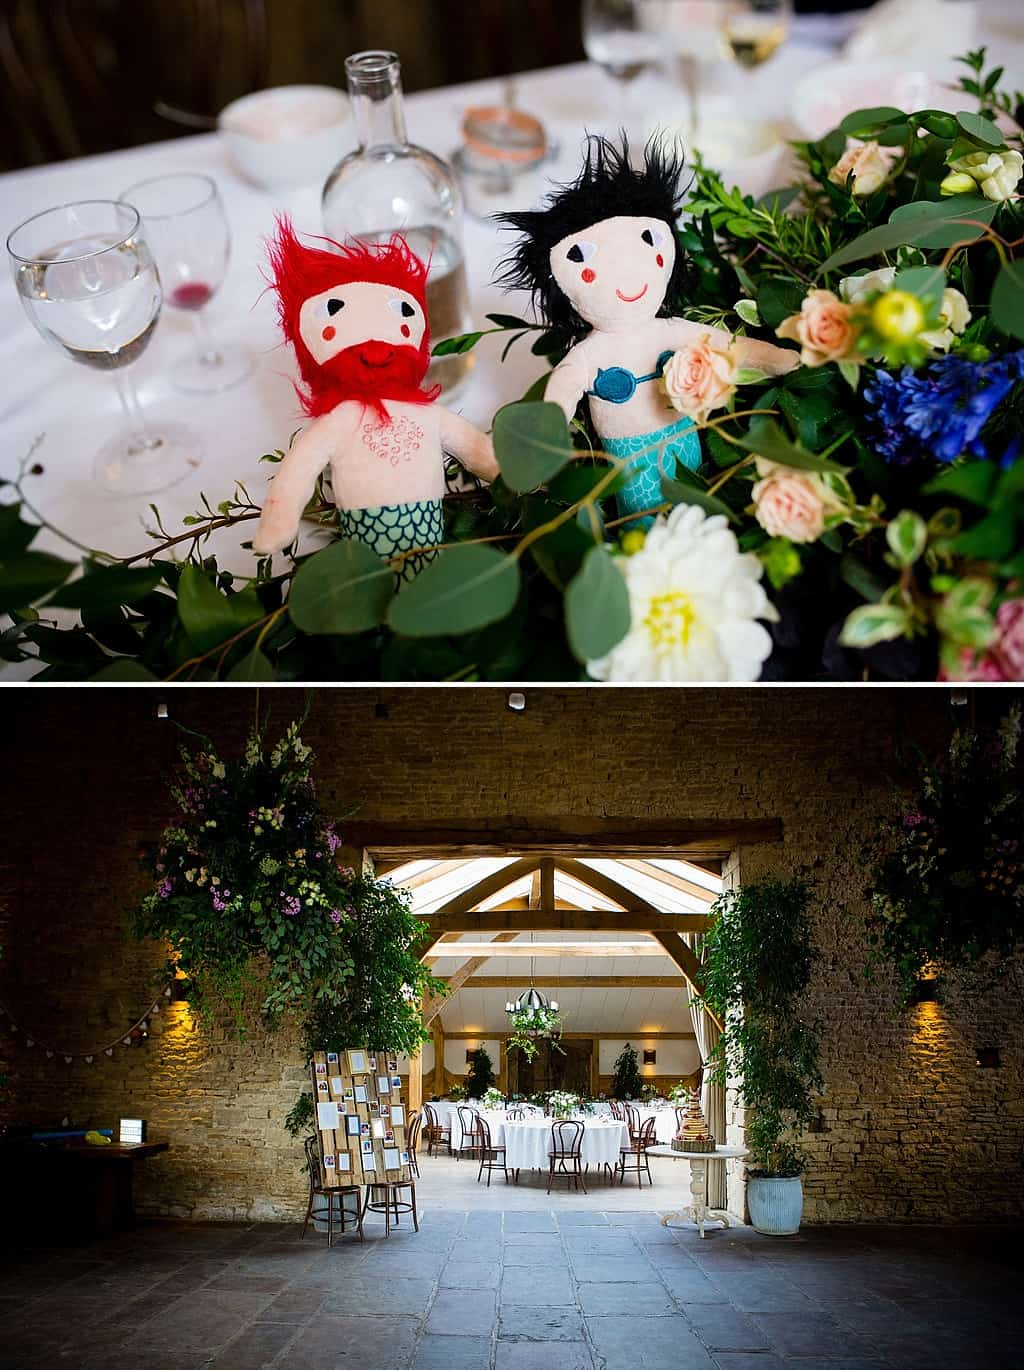 Wedding details at Cripps Barn